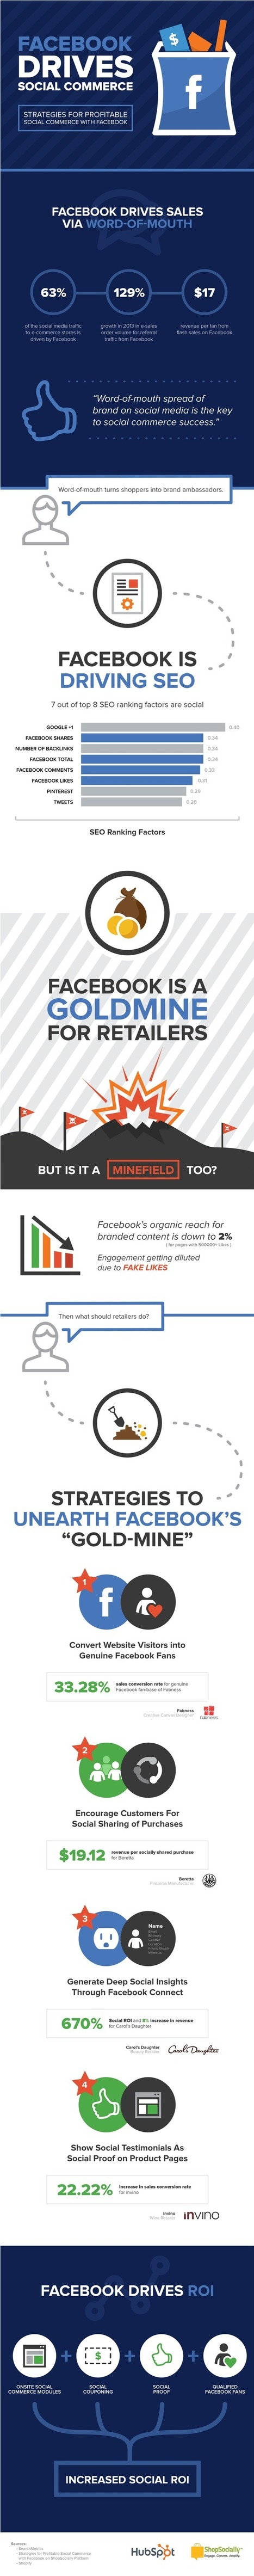 Facebook Drives Social Commerce - Infographic | Integrated Brand Communications | Scoop.it